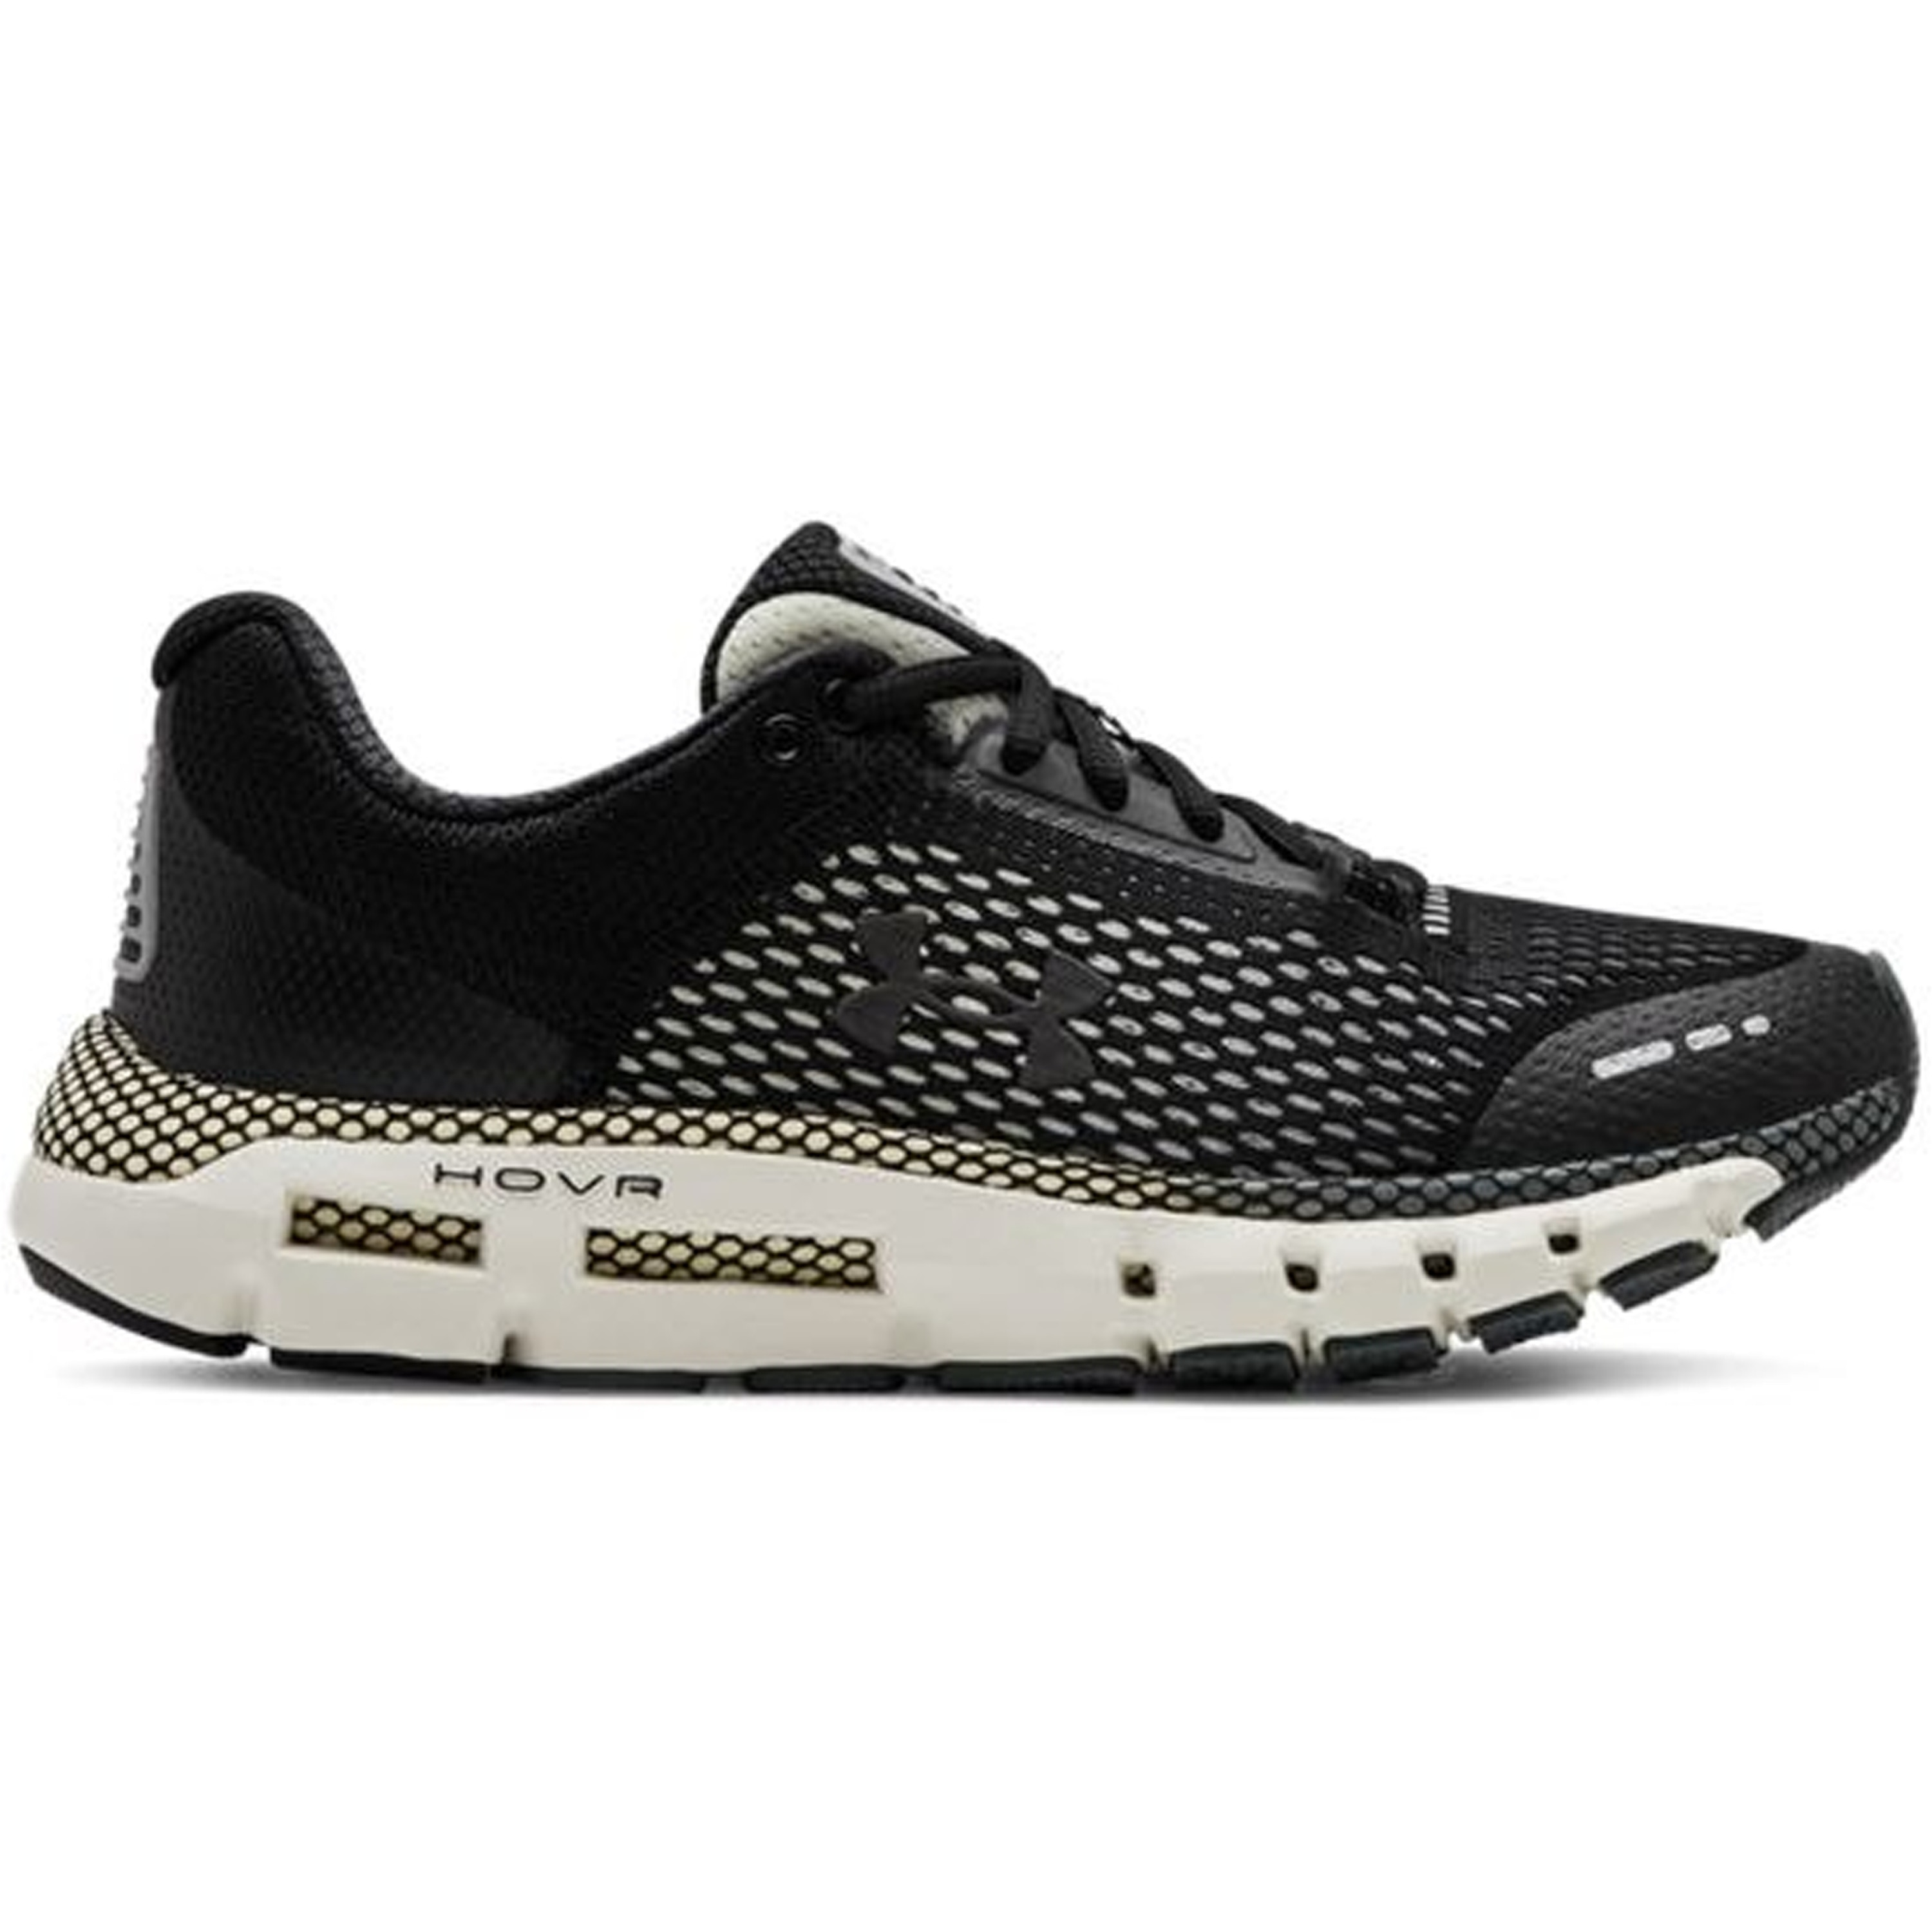 Under Armour Hovr Infinite Black White (W) (3021396-001)